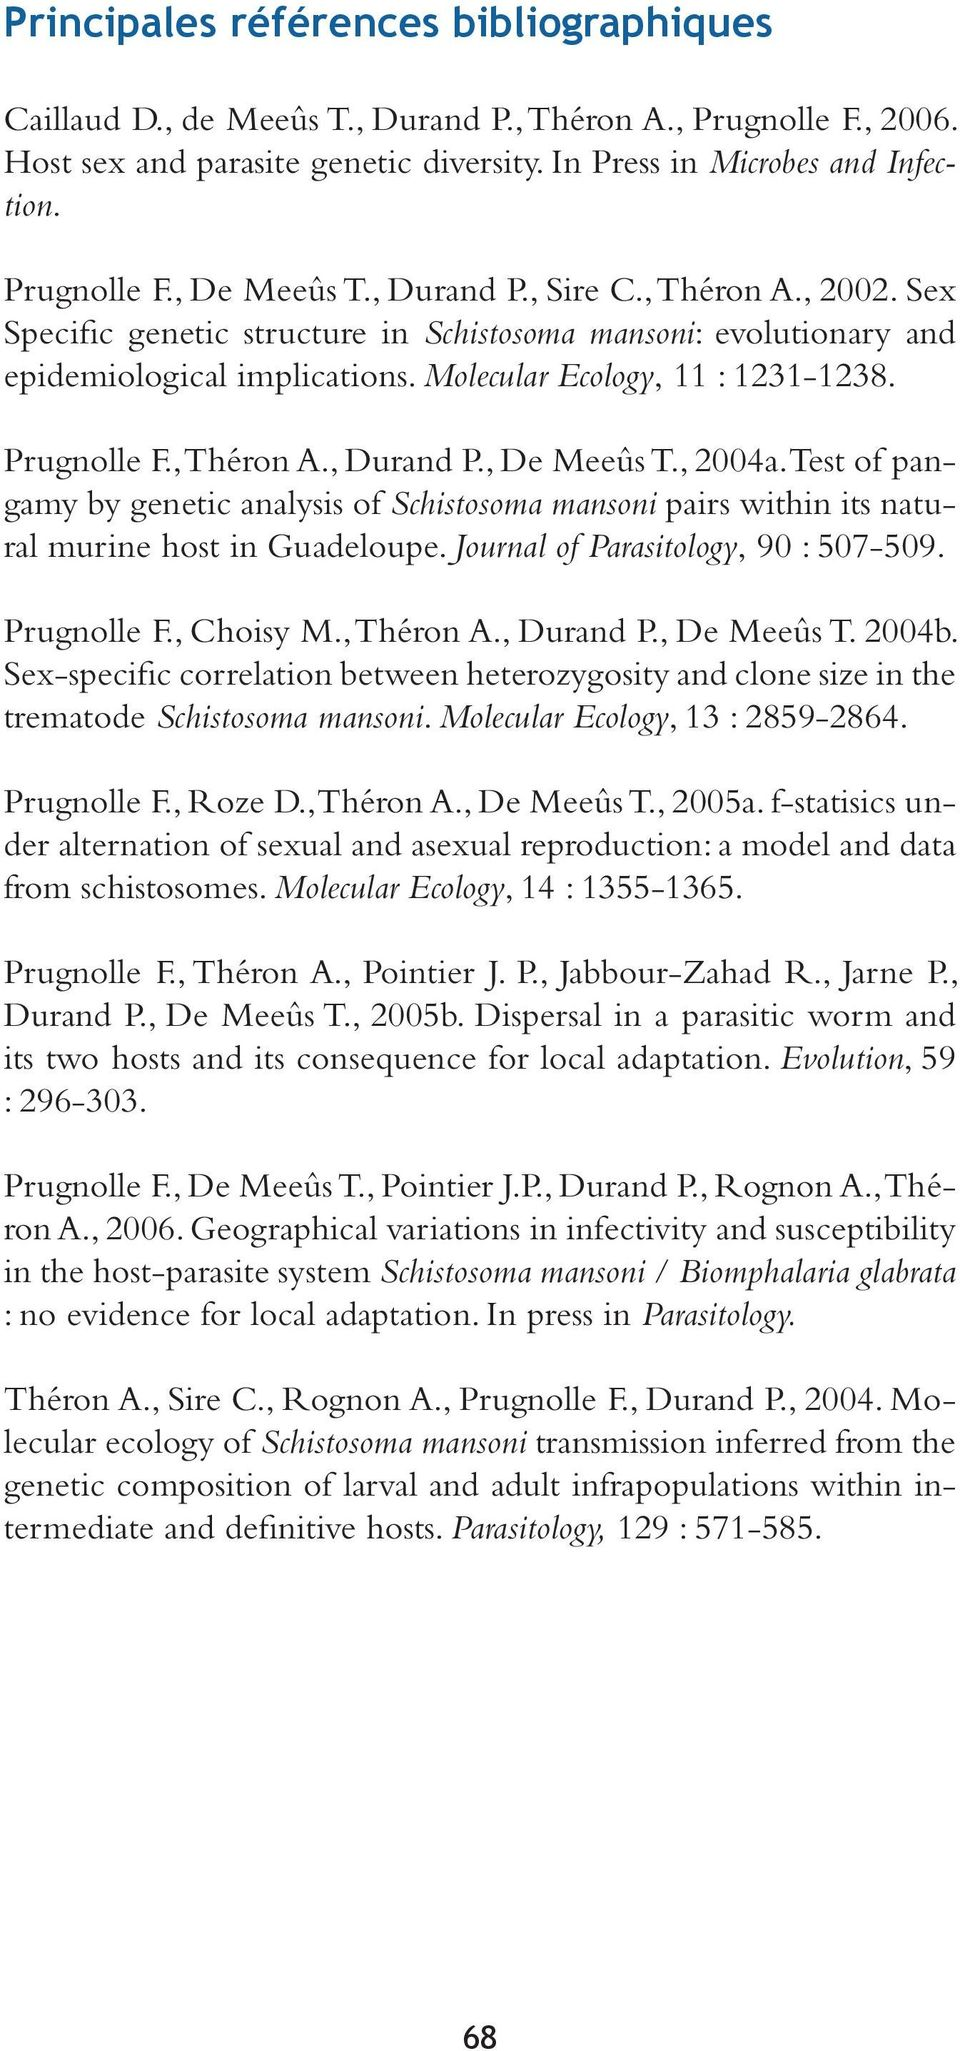 , 2004a. Test of pangamy by genetic analysis of Schistosoma mansoni pairs within its natural murine host in Guadeloupe. Journal of Parasitology, 90 : 507-509. Prugnolle F., Choisy M., Théron A.